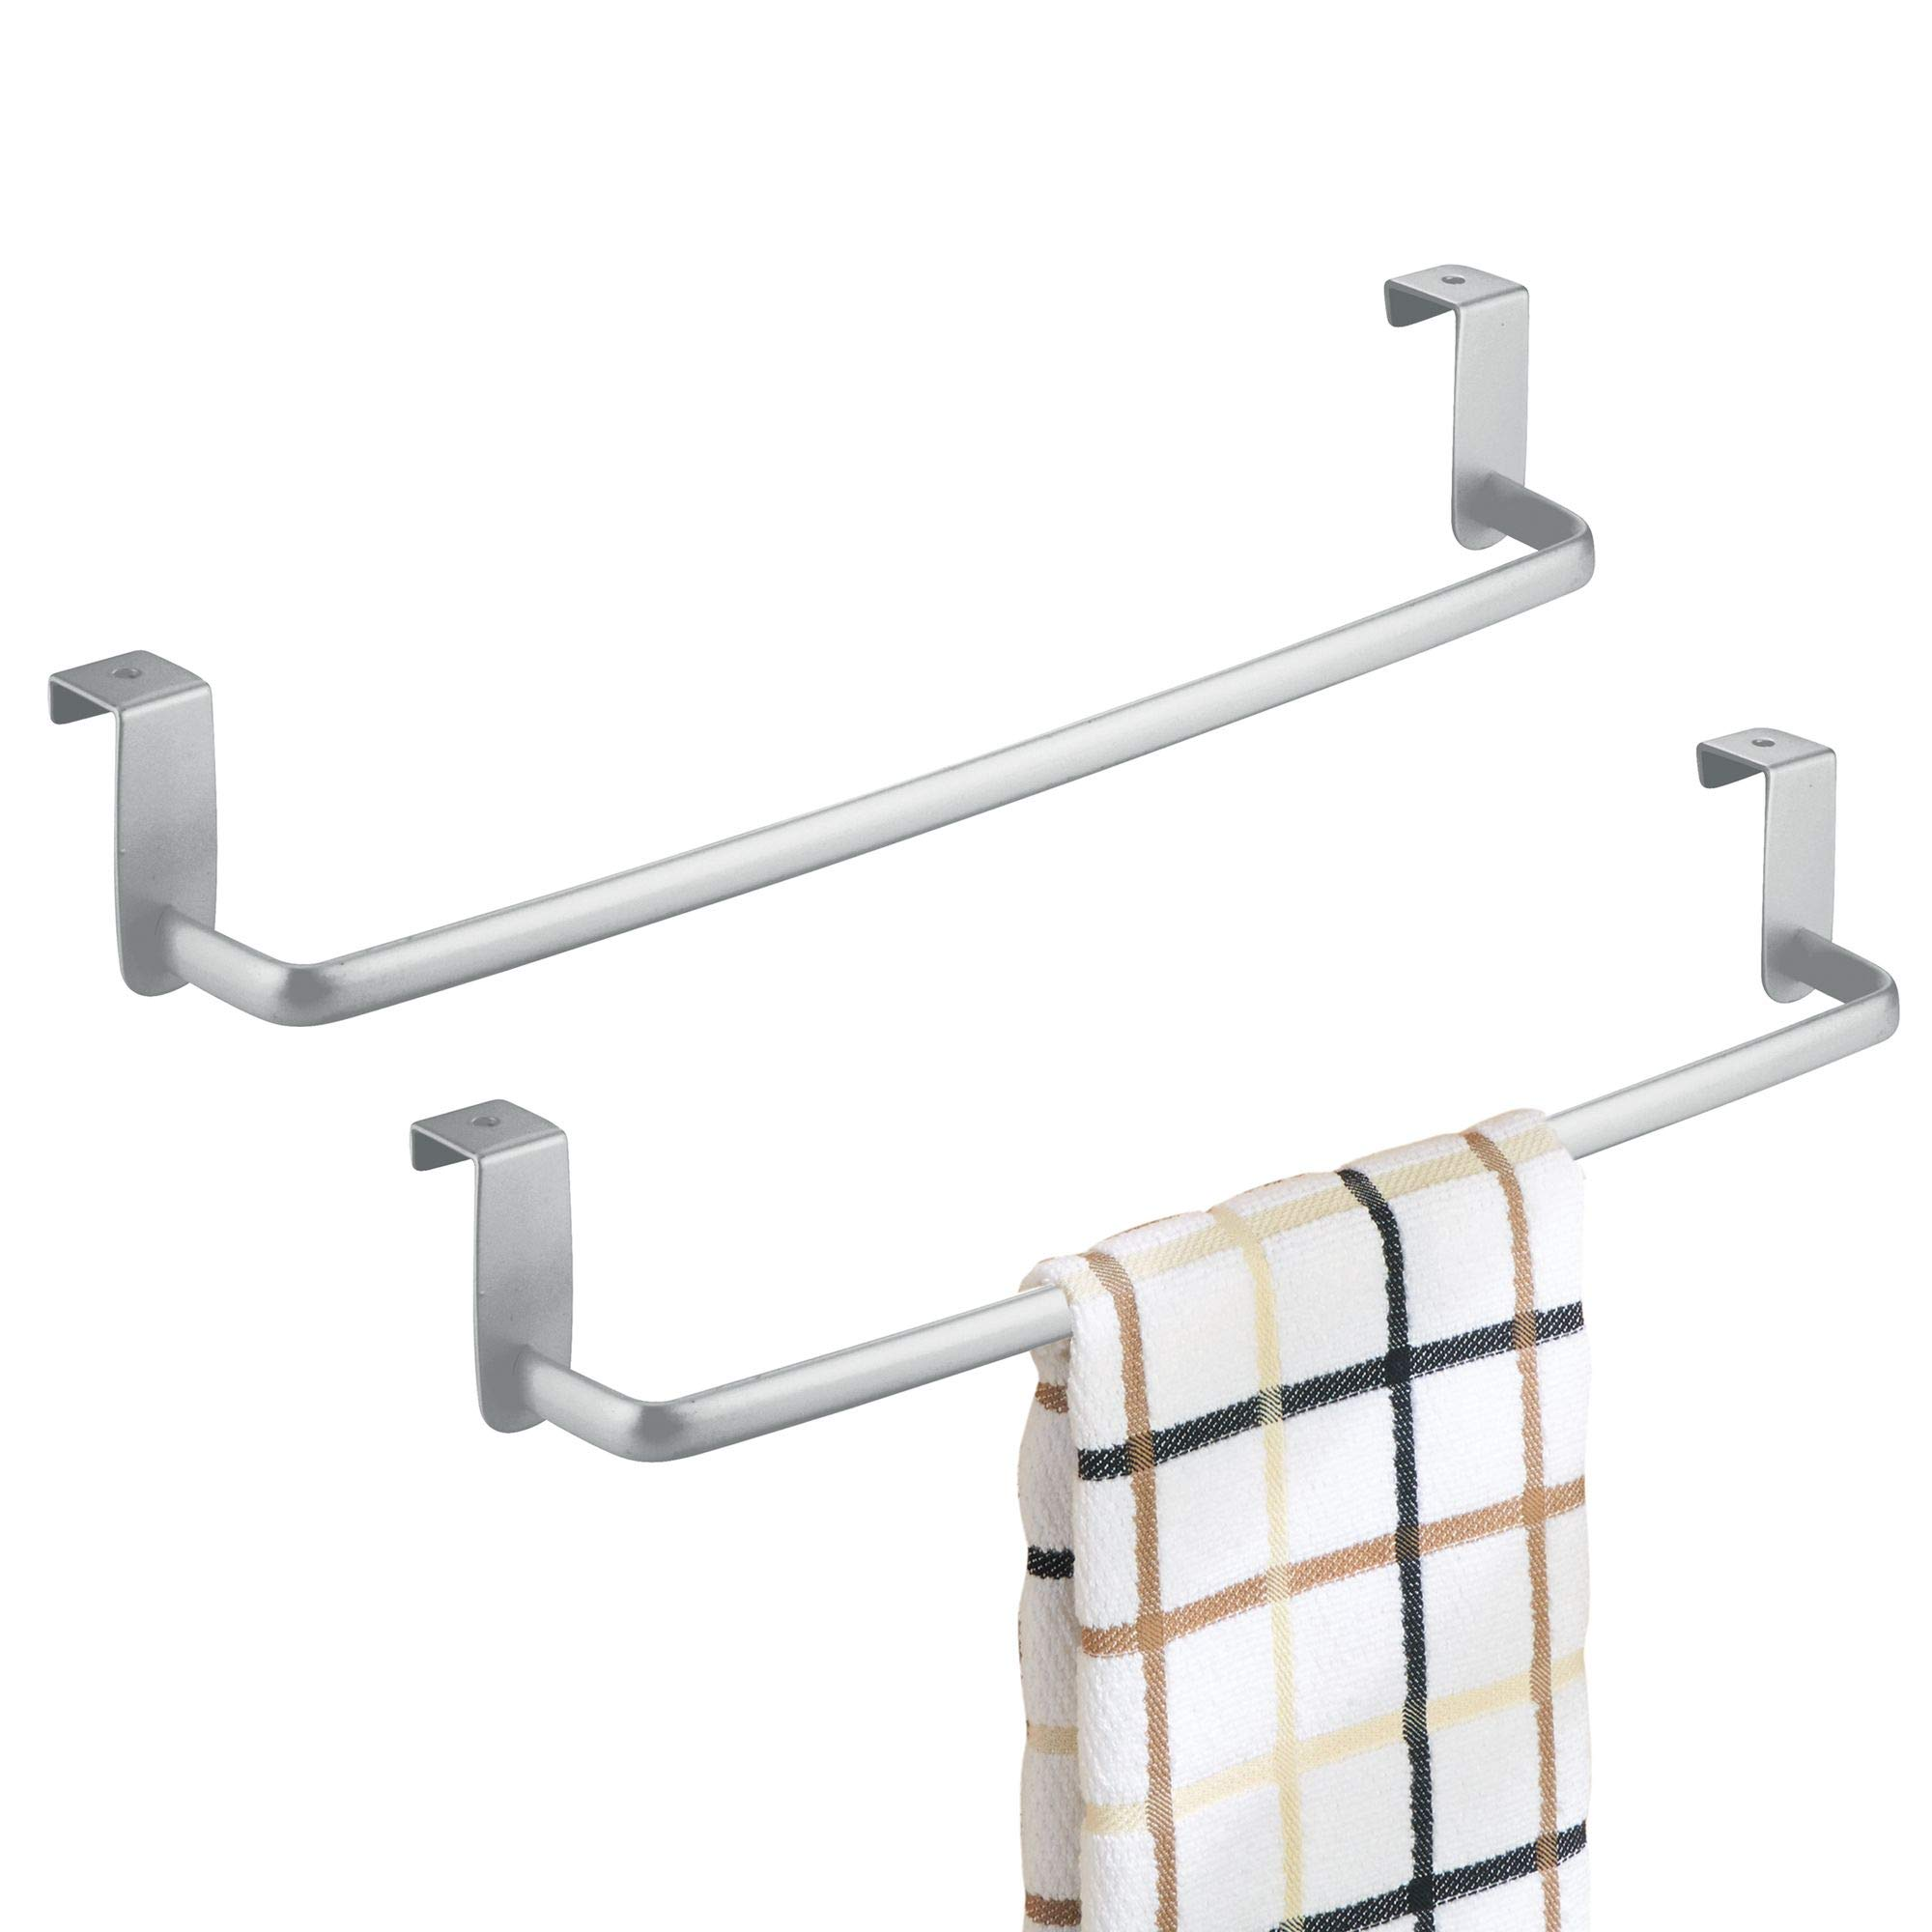 mDesign Kitchen Storage Over Cabinet Curved Steel Towel Bar - Hang on Inside or Outside of Doors, for Organizing and Hanging Hand, Dish, and Tea Towels - 14'' Wide, Pack of 2, Silver Finish